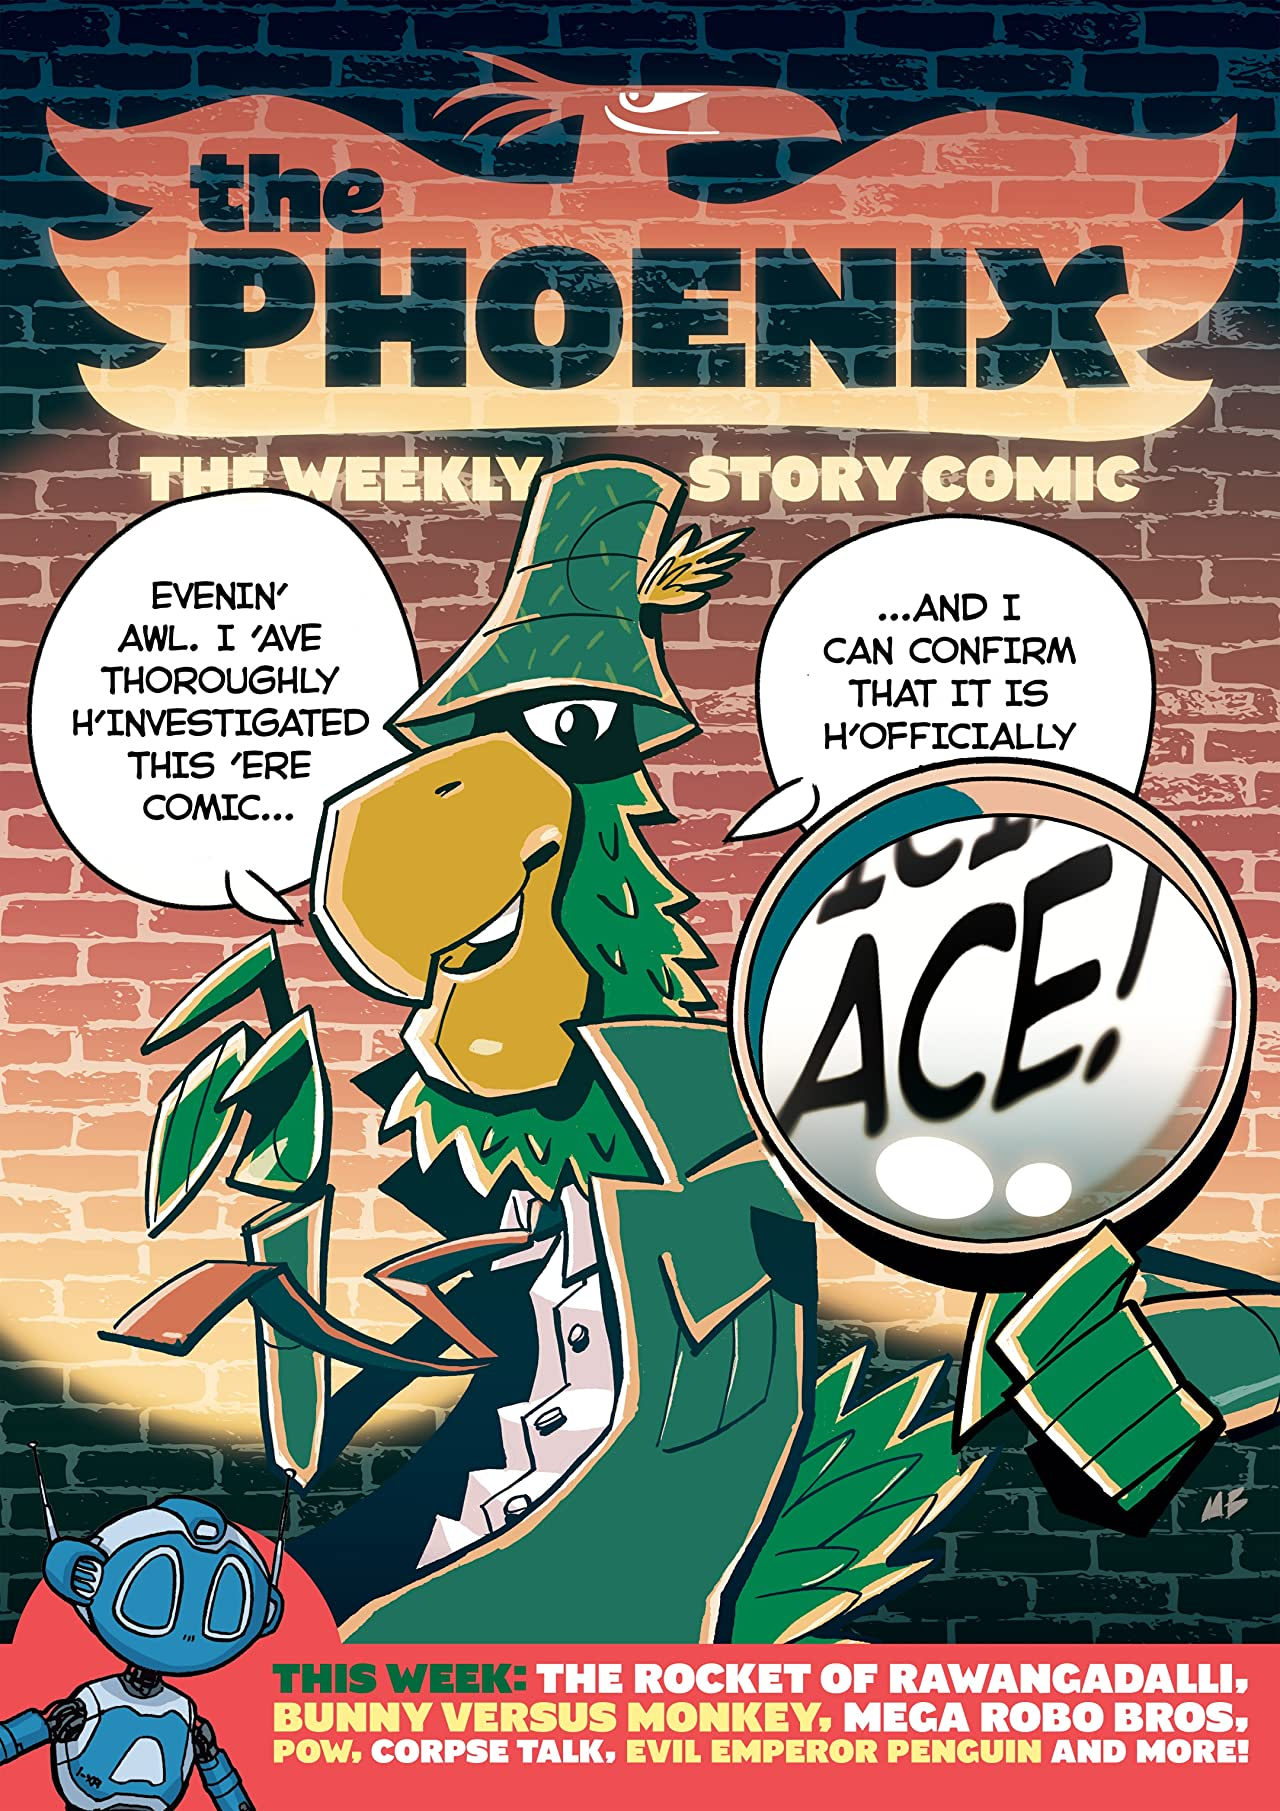 The Phoenix #164: The Weekly Story Comic